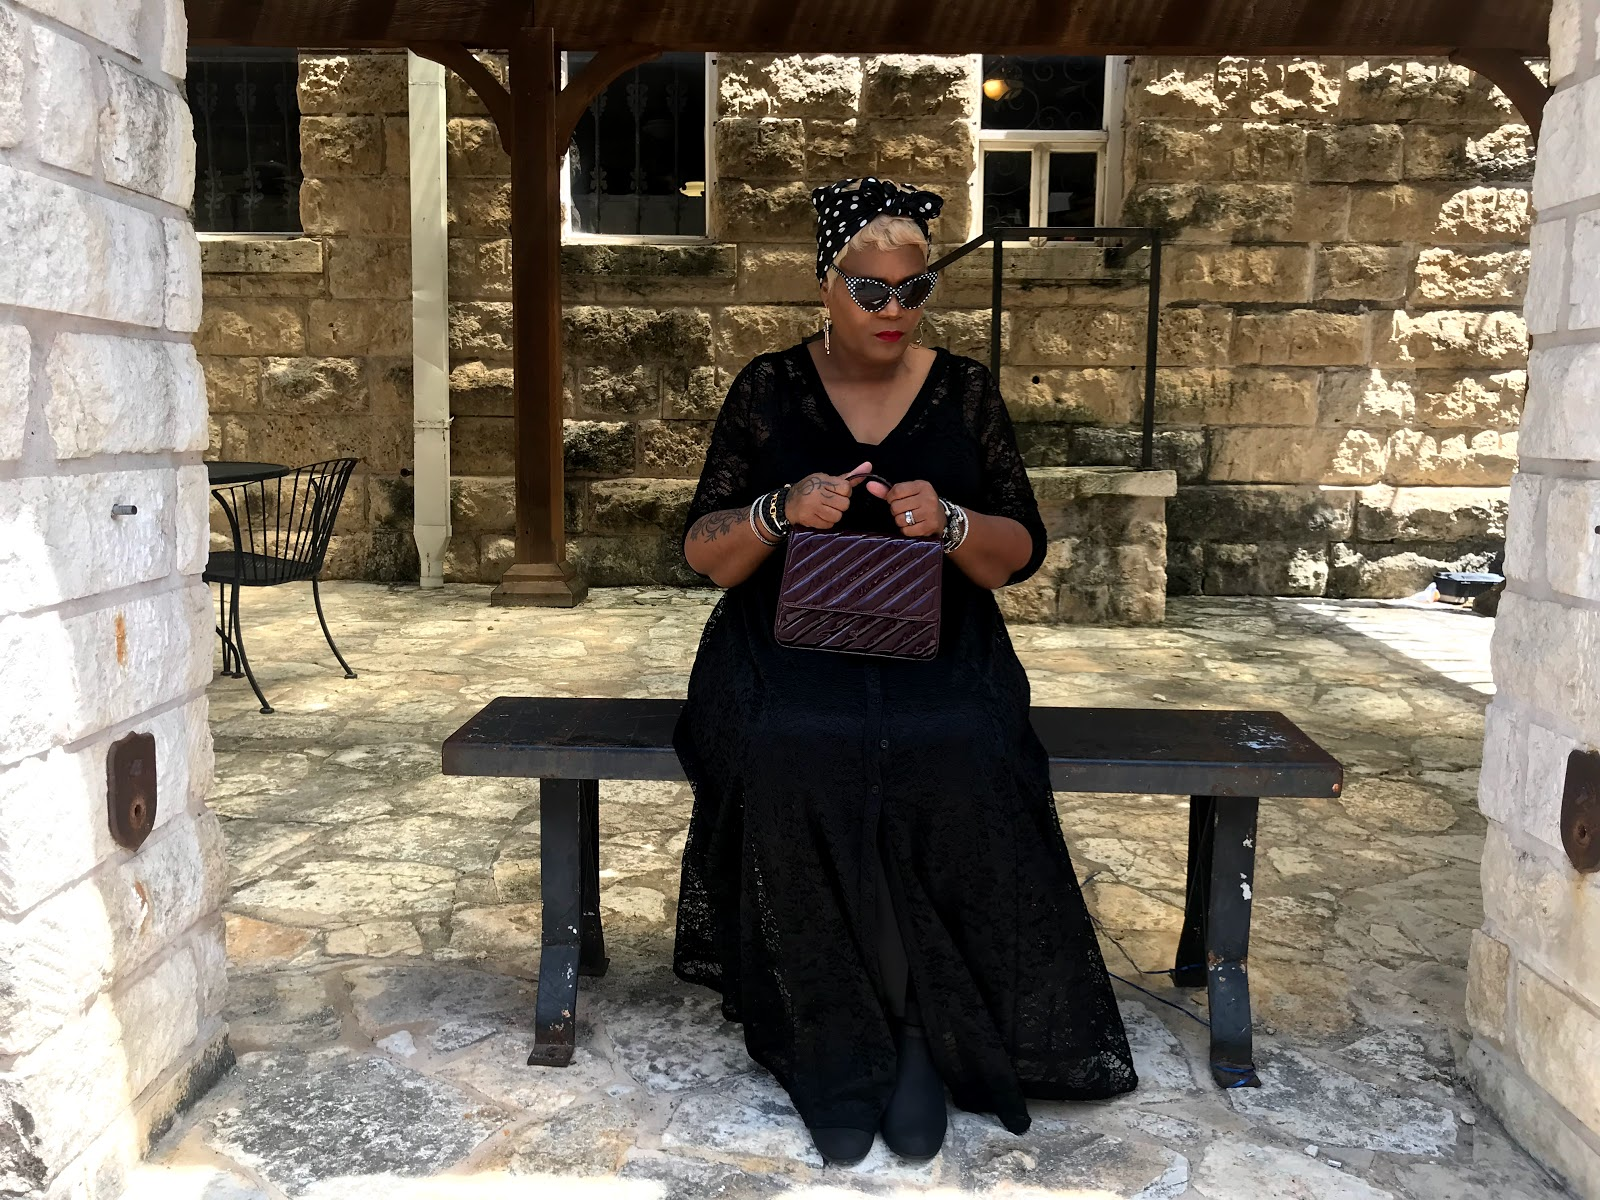 Image: Tangie Bell sitting outside in black dress, polka dot scarf, and sharing her story about midlife crying. I Thought Jada Pinkett Smith Was Lying About Crying 45 Days Until It Happened To Me! #beingfortysomething